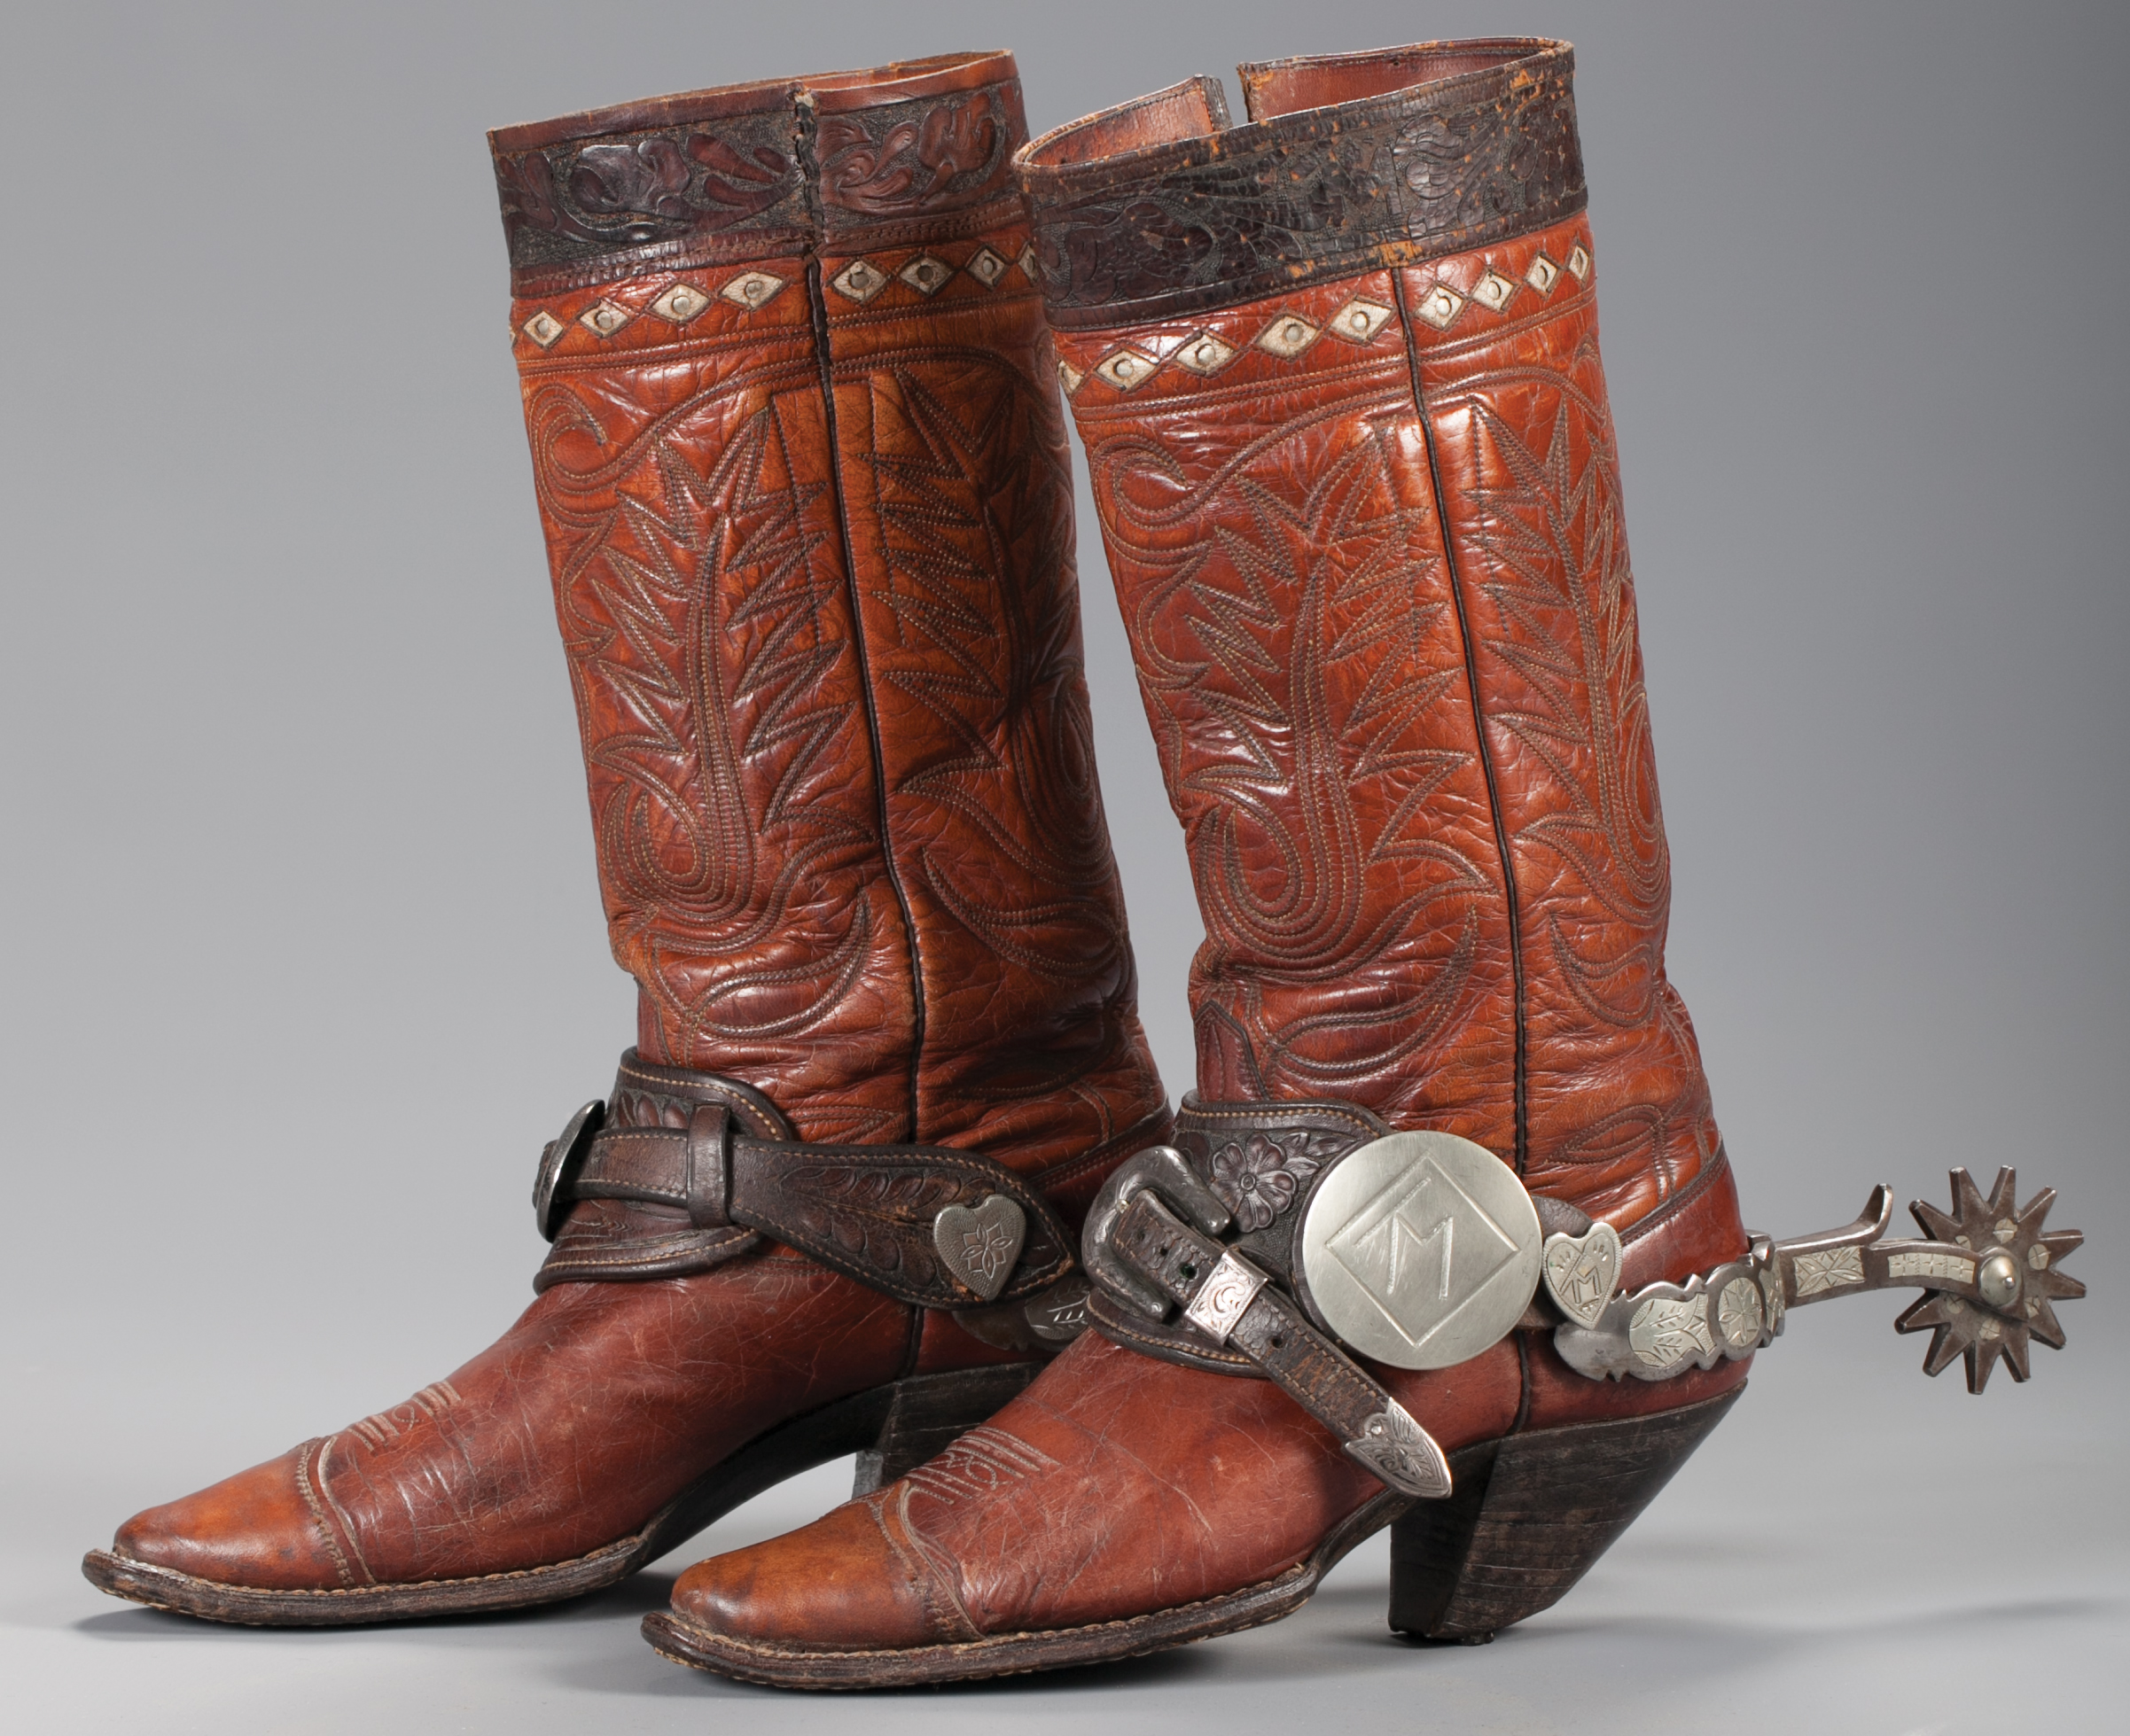 Brian Lebel's Mesa Auction - January 21, 2017   Lot 51: Tom Mix's Personal Cowboy Boots.   Sold $5,175   Lot 52: Bob Baldwin Canon City Spurs made for Tom Mix. Est.   Sold $16,100